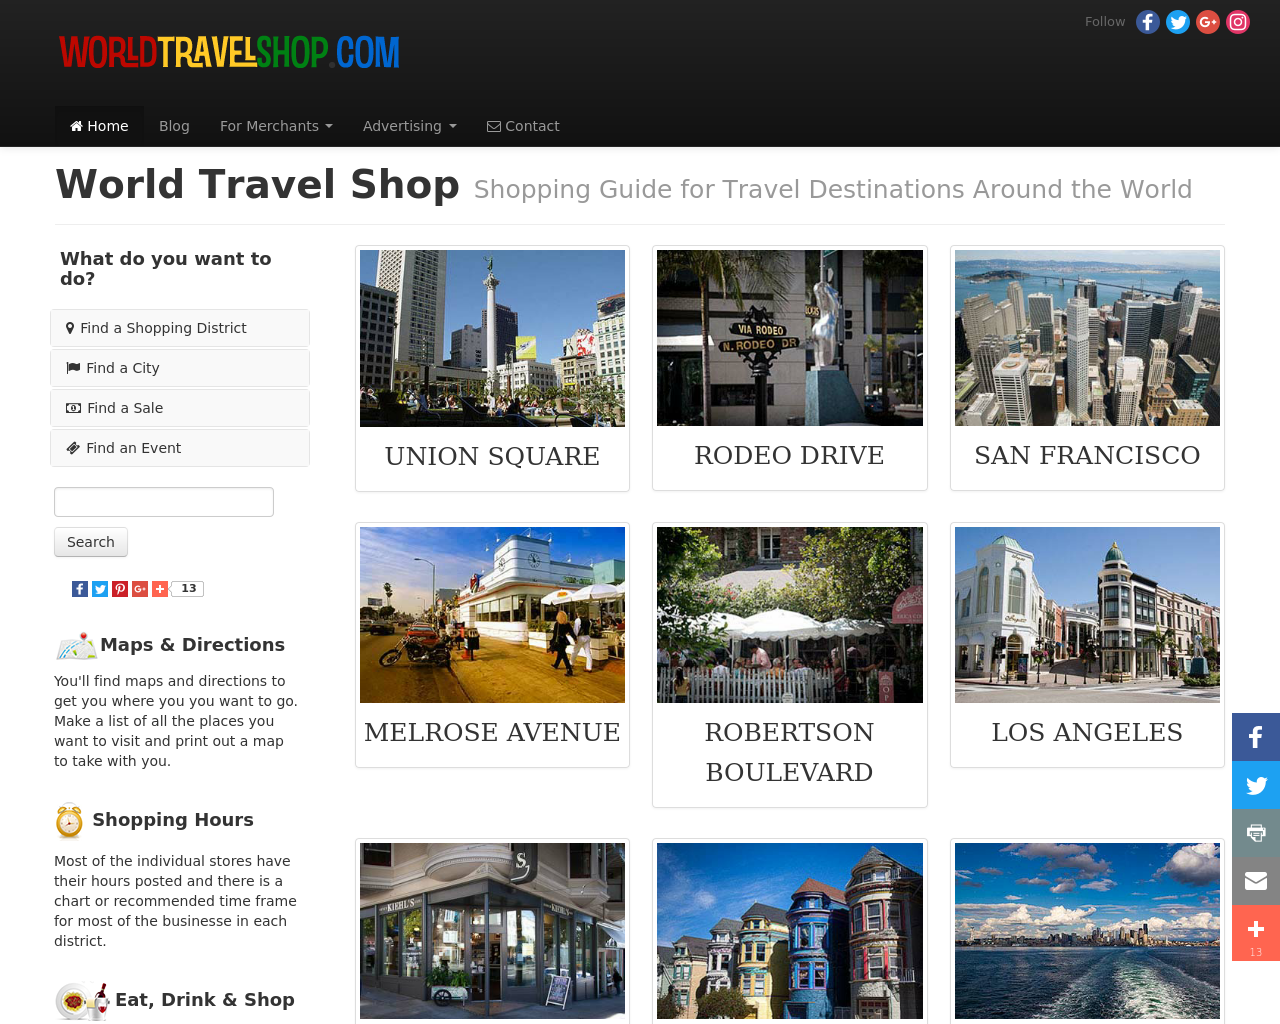 World-Travel-Shop-Embarcadero-Advertising-Reviews-Pricing